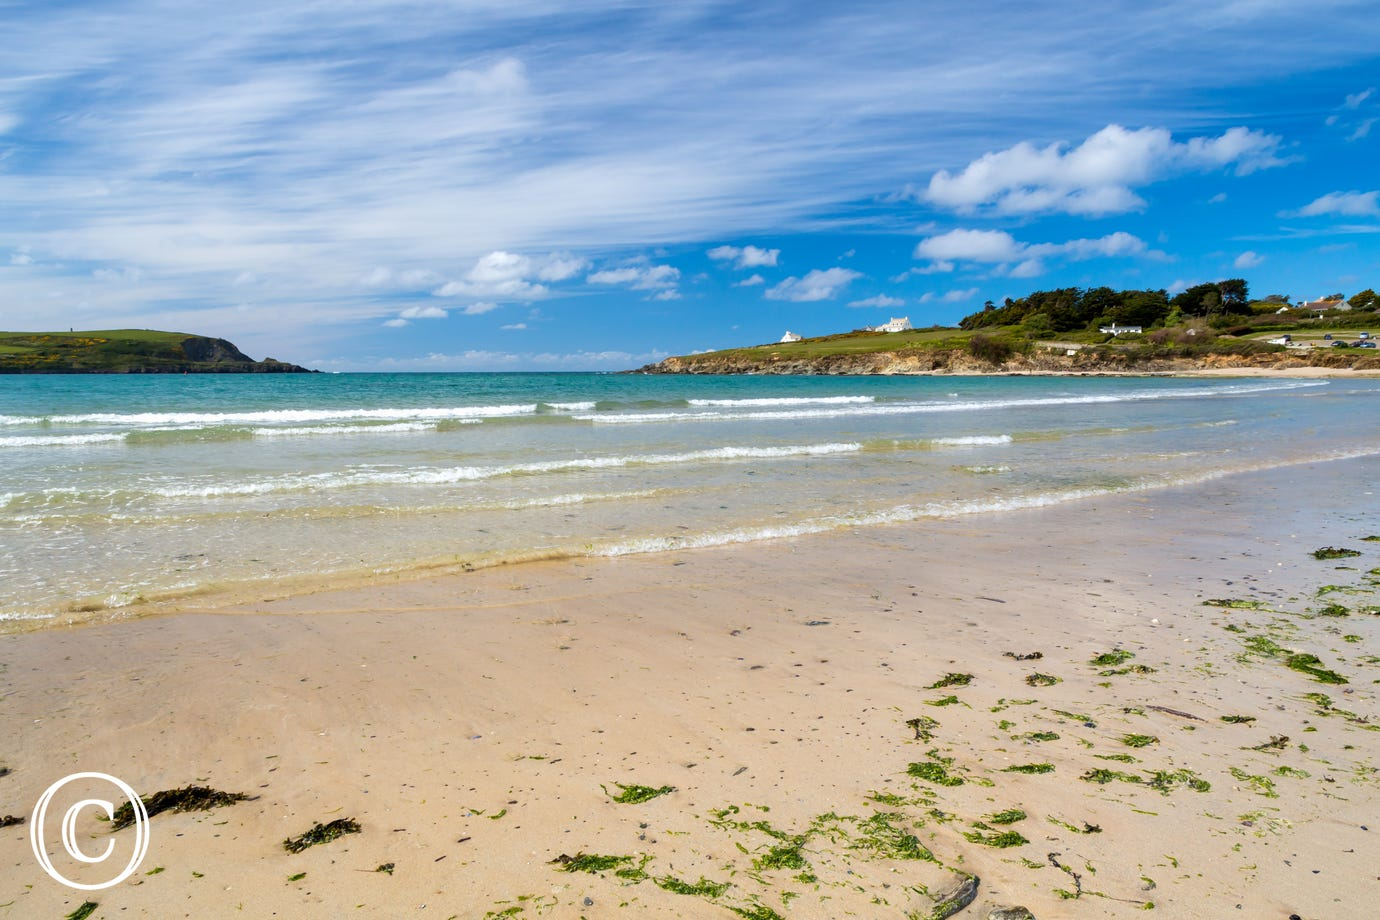 The beautiful beach at Daymer Bay near Rock is about a 15 minute drive